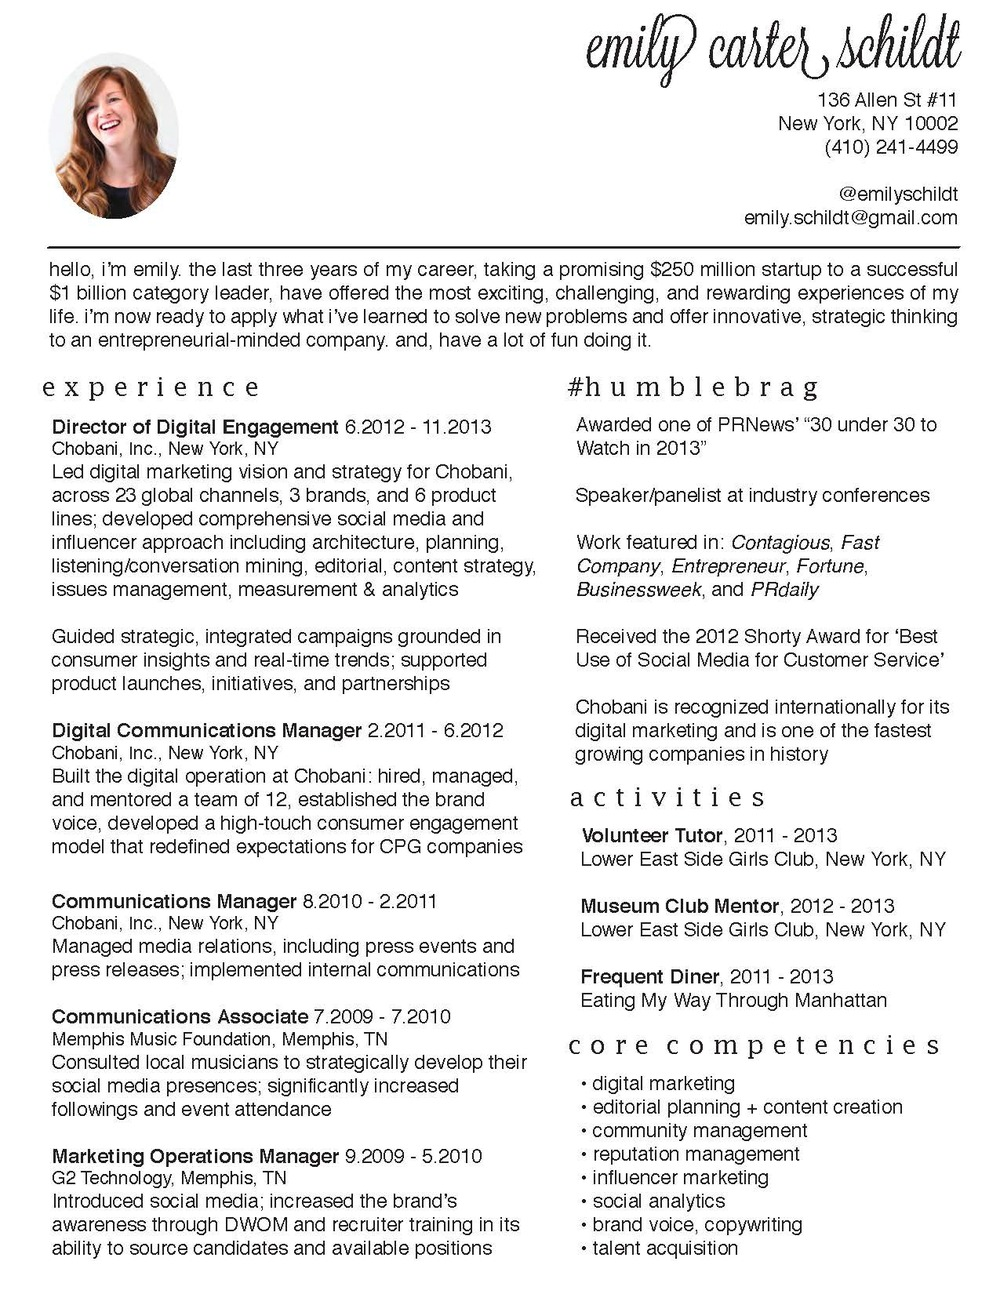 Custom resume writing help near me